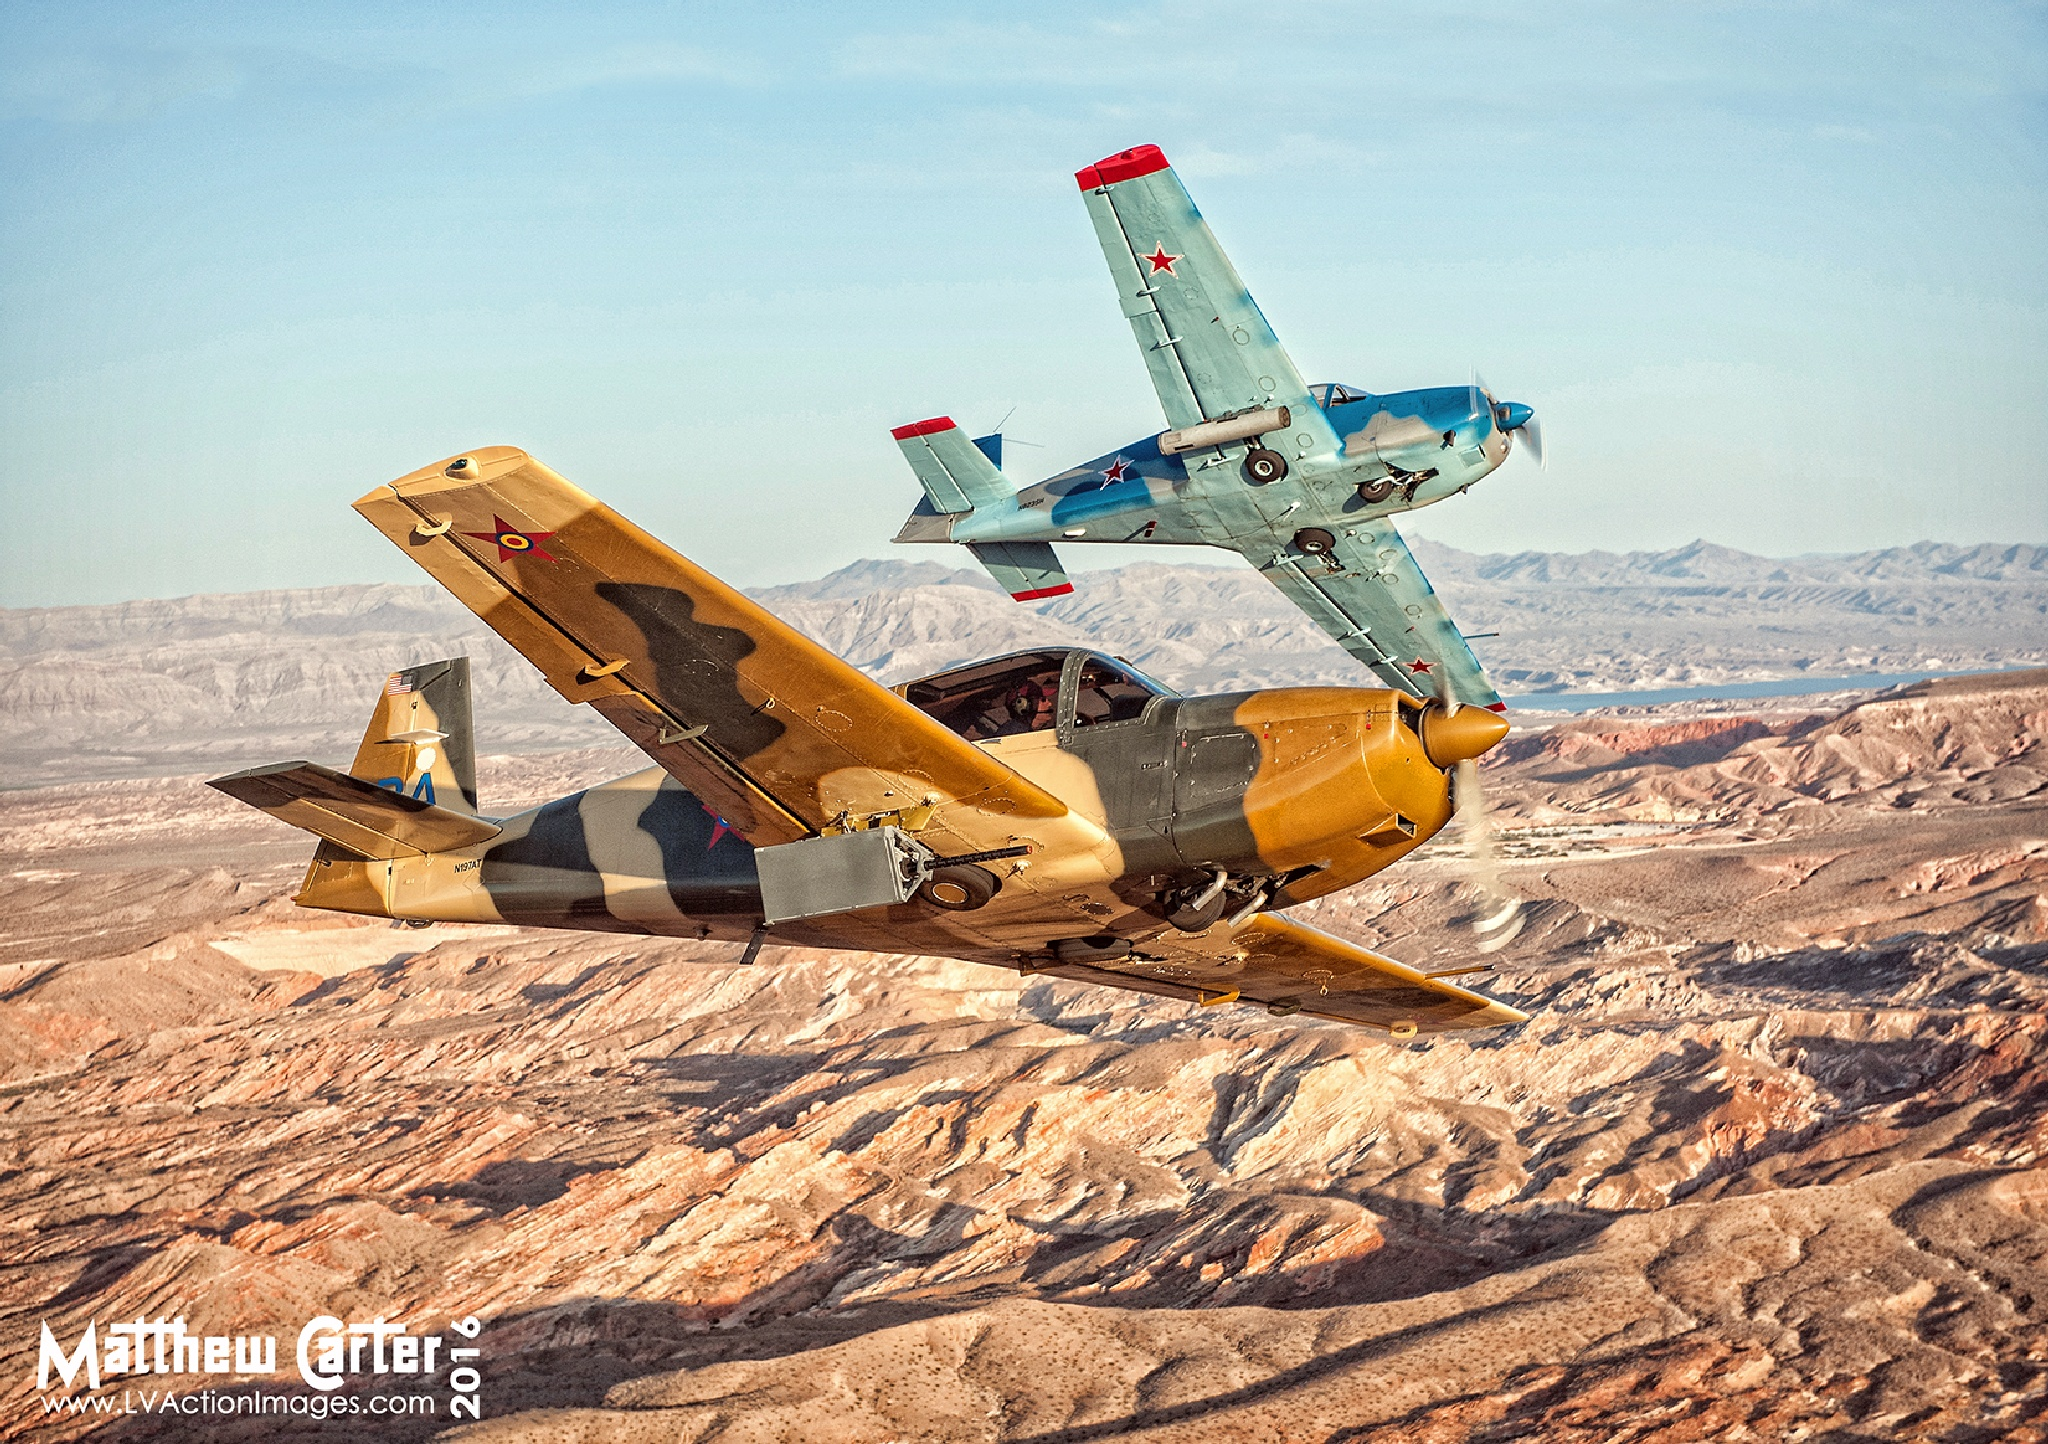 Charity Flight by LV Action Images